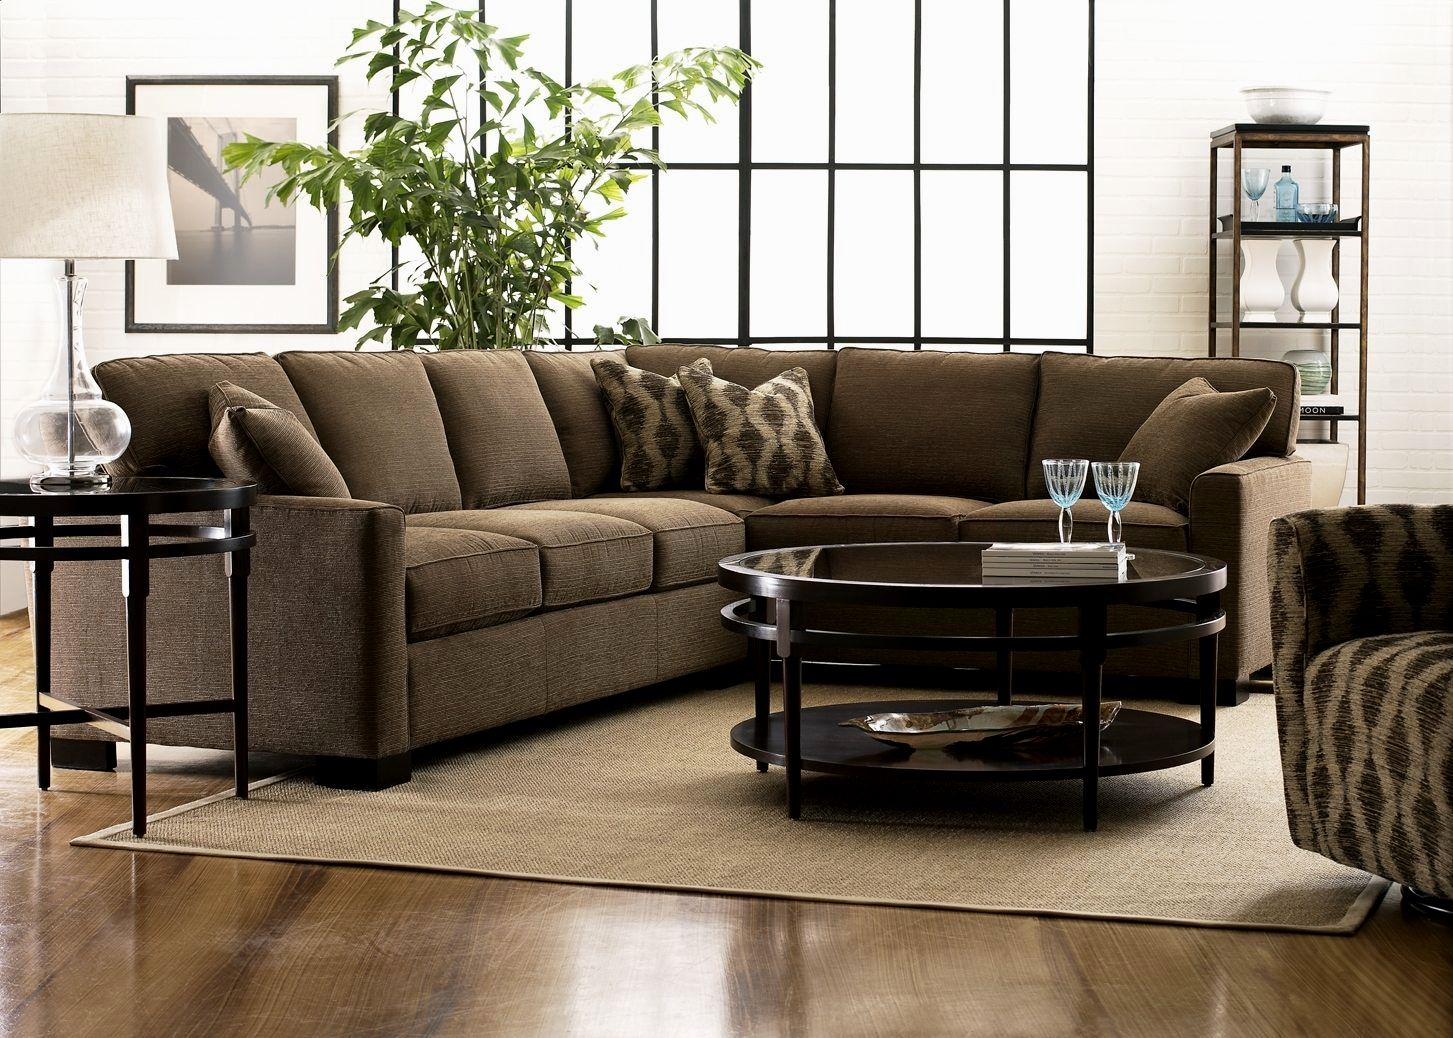 fresh leather sectional sofa with chaise ideas-Superb Leather Sectional sofa with Chaise Online